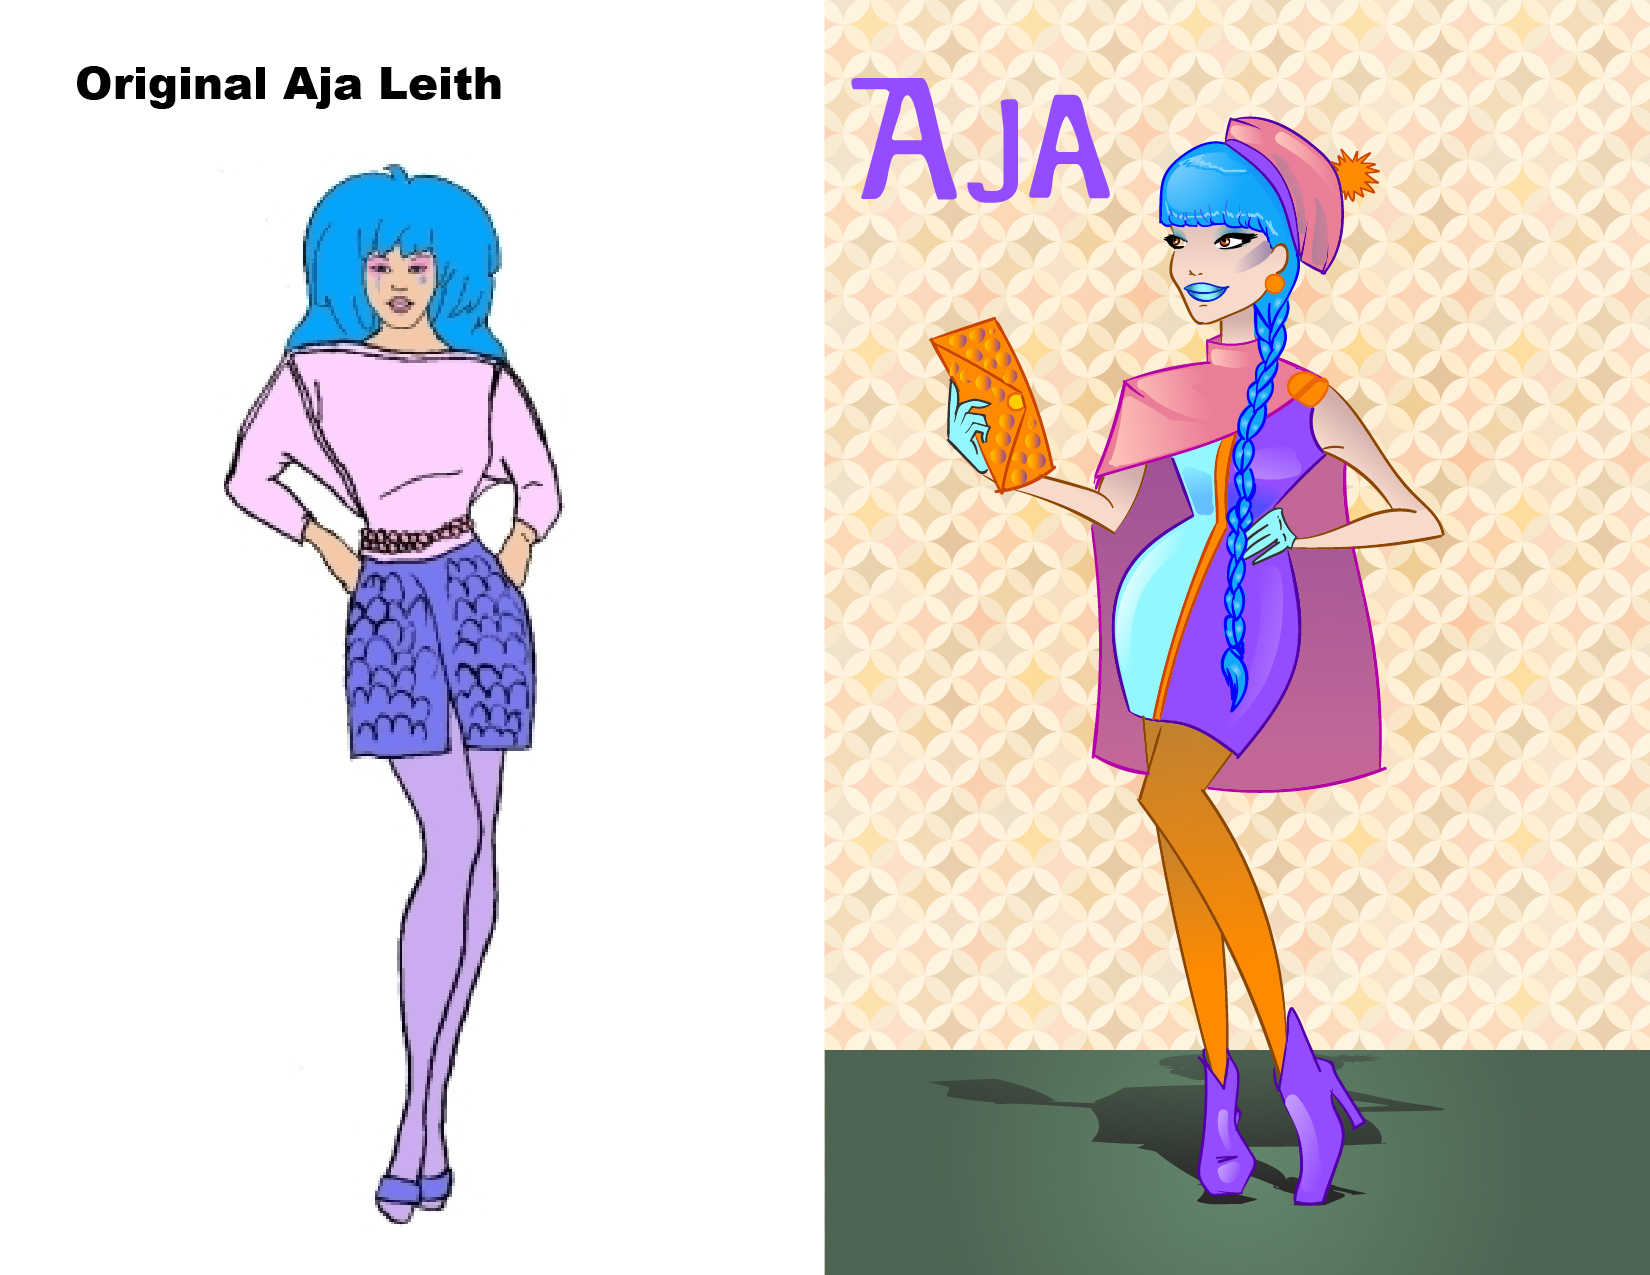 First up is Aja Leith, Jem's friend and lead guitar player. There was an episode where she wore a beret and I really dug it, so I gave her a nice clean mod look with a pom pom adorned beret and a stylish cape. Show them how it's done, Aja!!